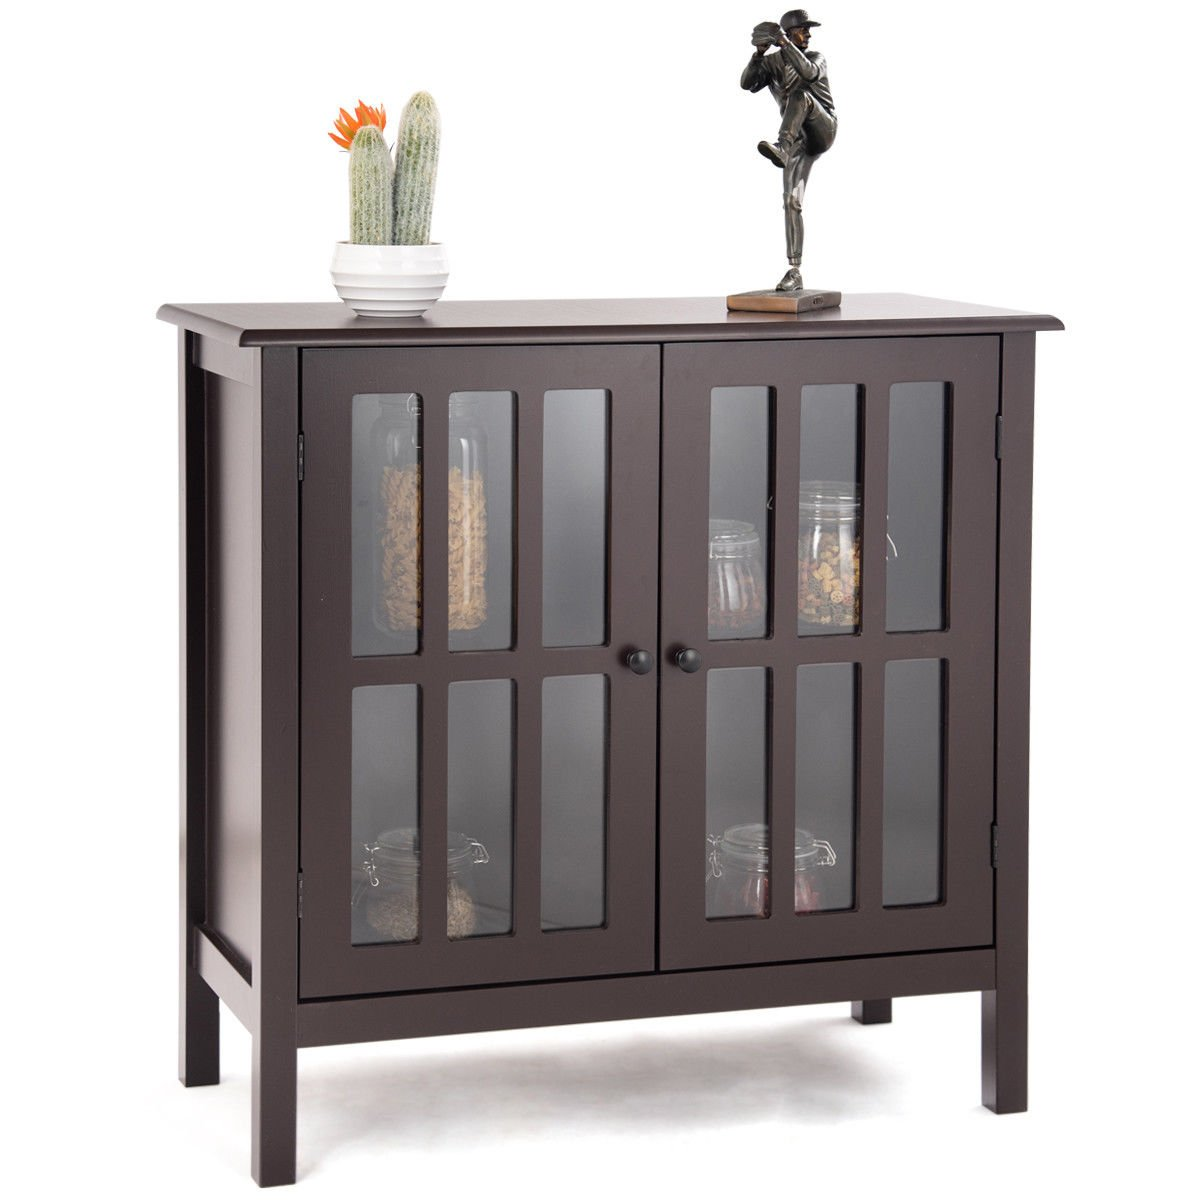 Tangkula Console Cabinet Storage White Glass Door Sideboard Console Table Server Display Buffet Cabinet (Brown)